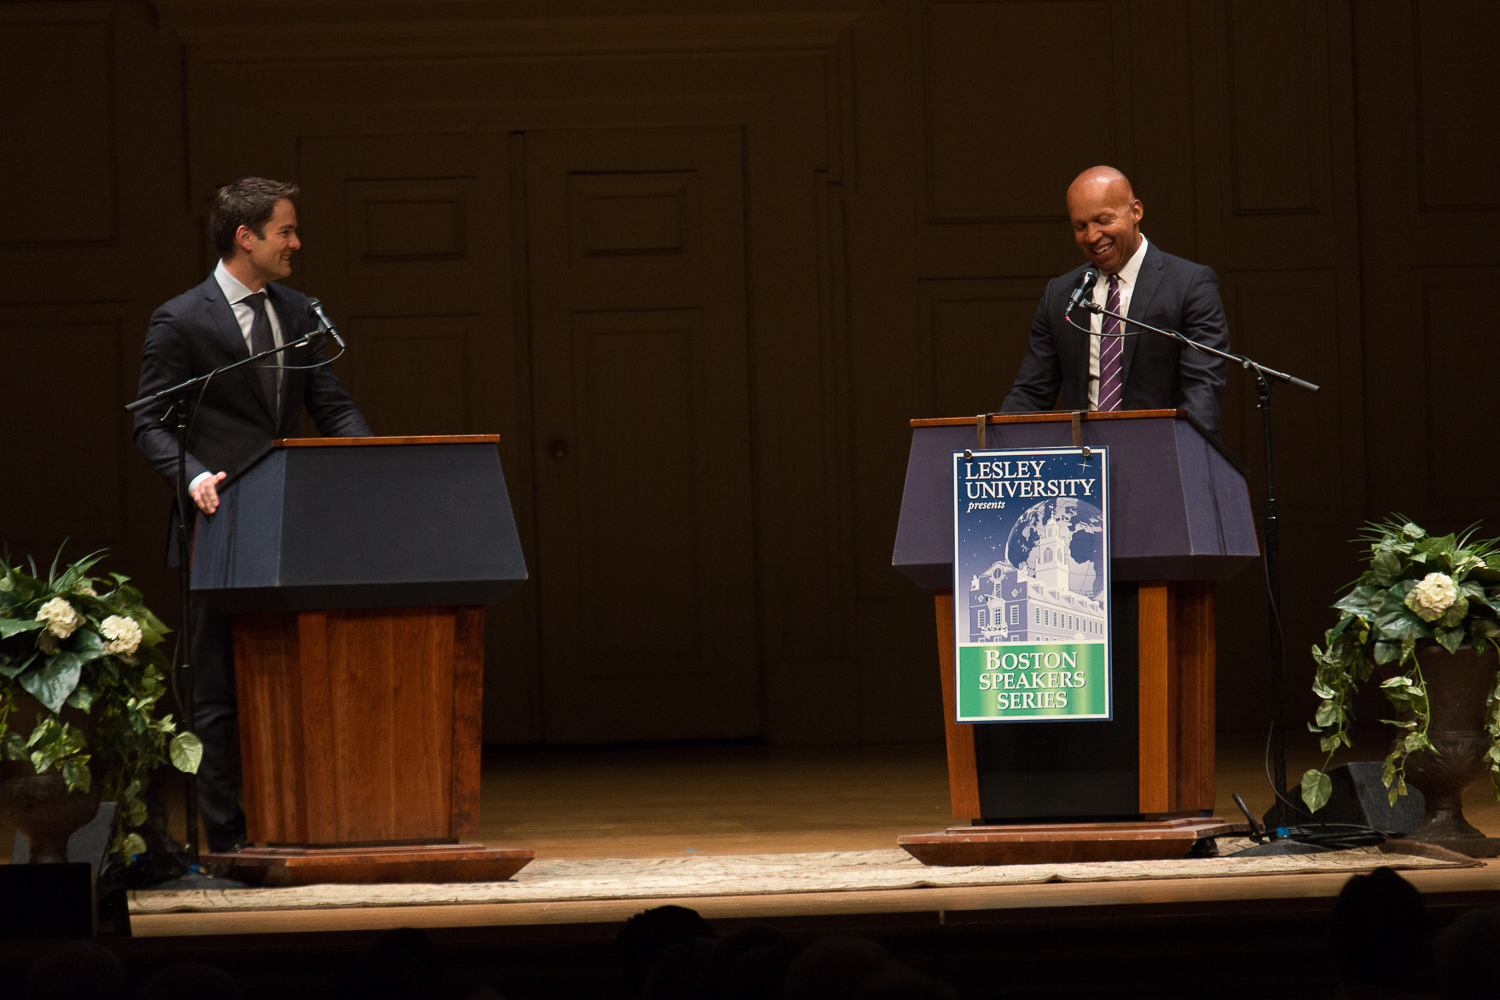 Jared Bowen and Bryan Stevenson on stage together, both behind podiums